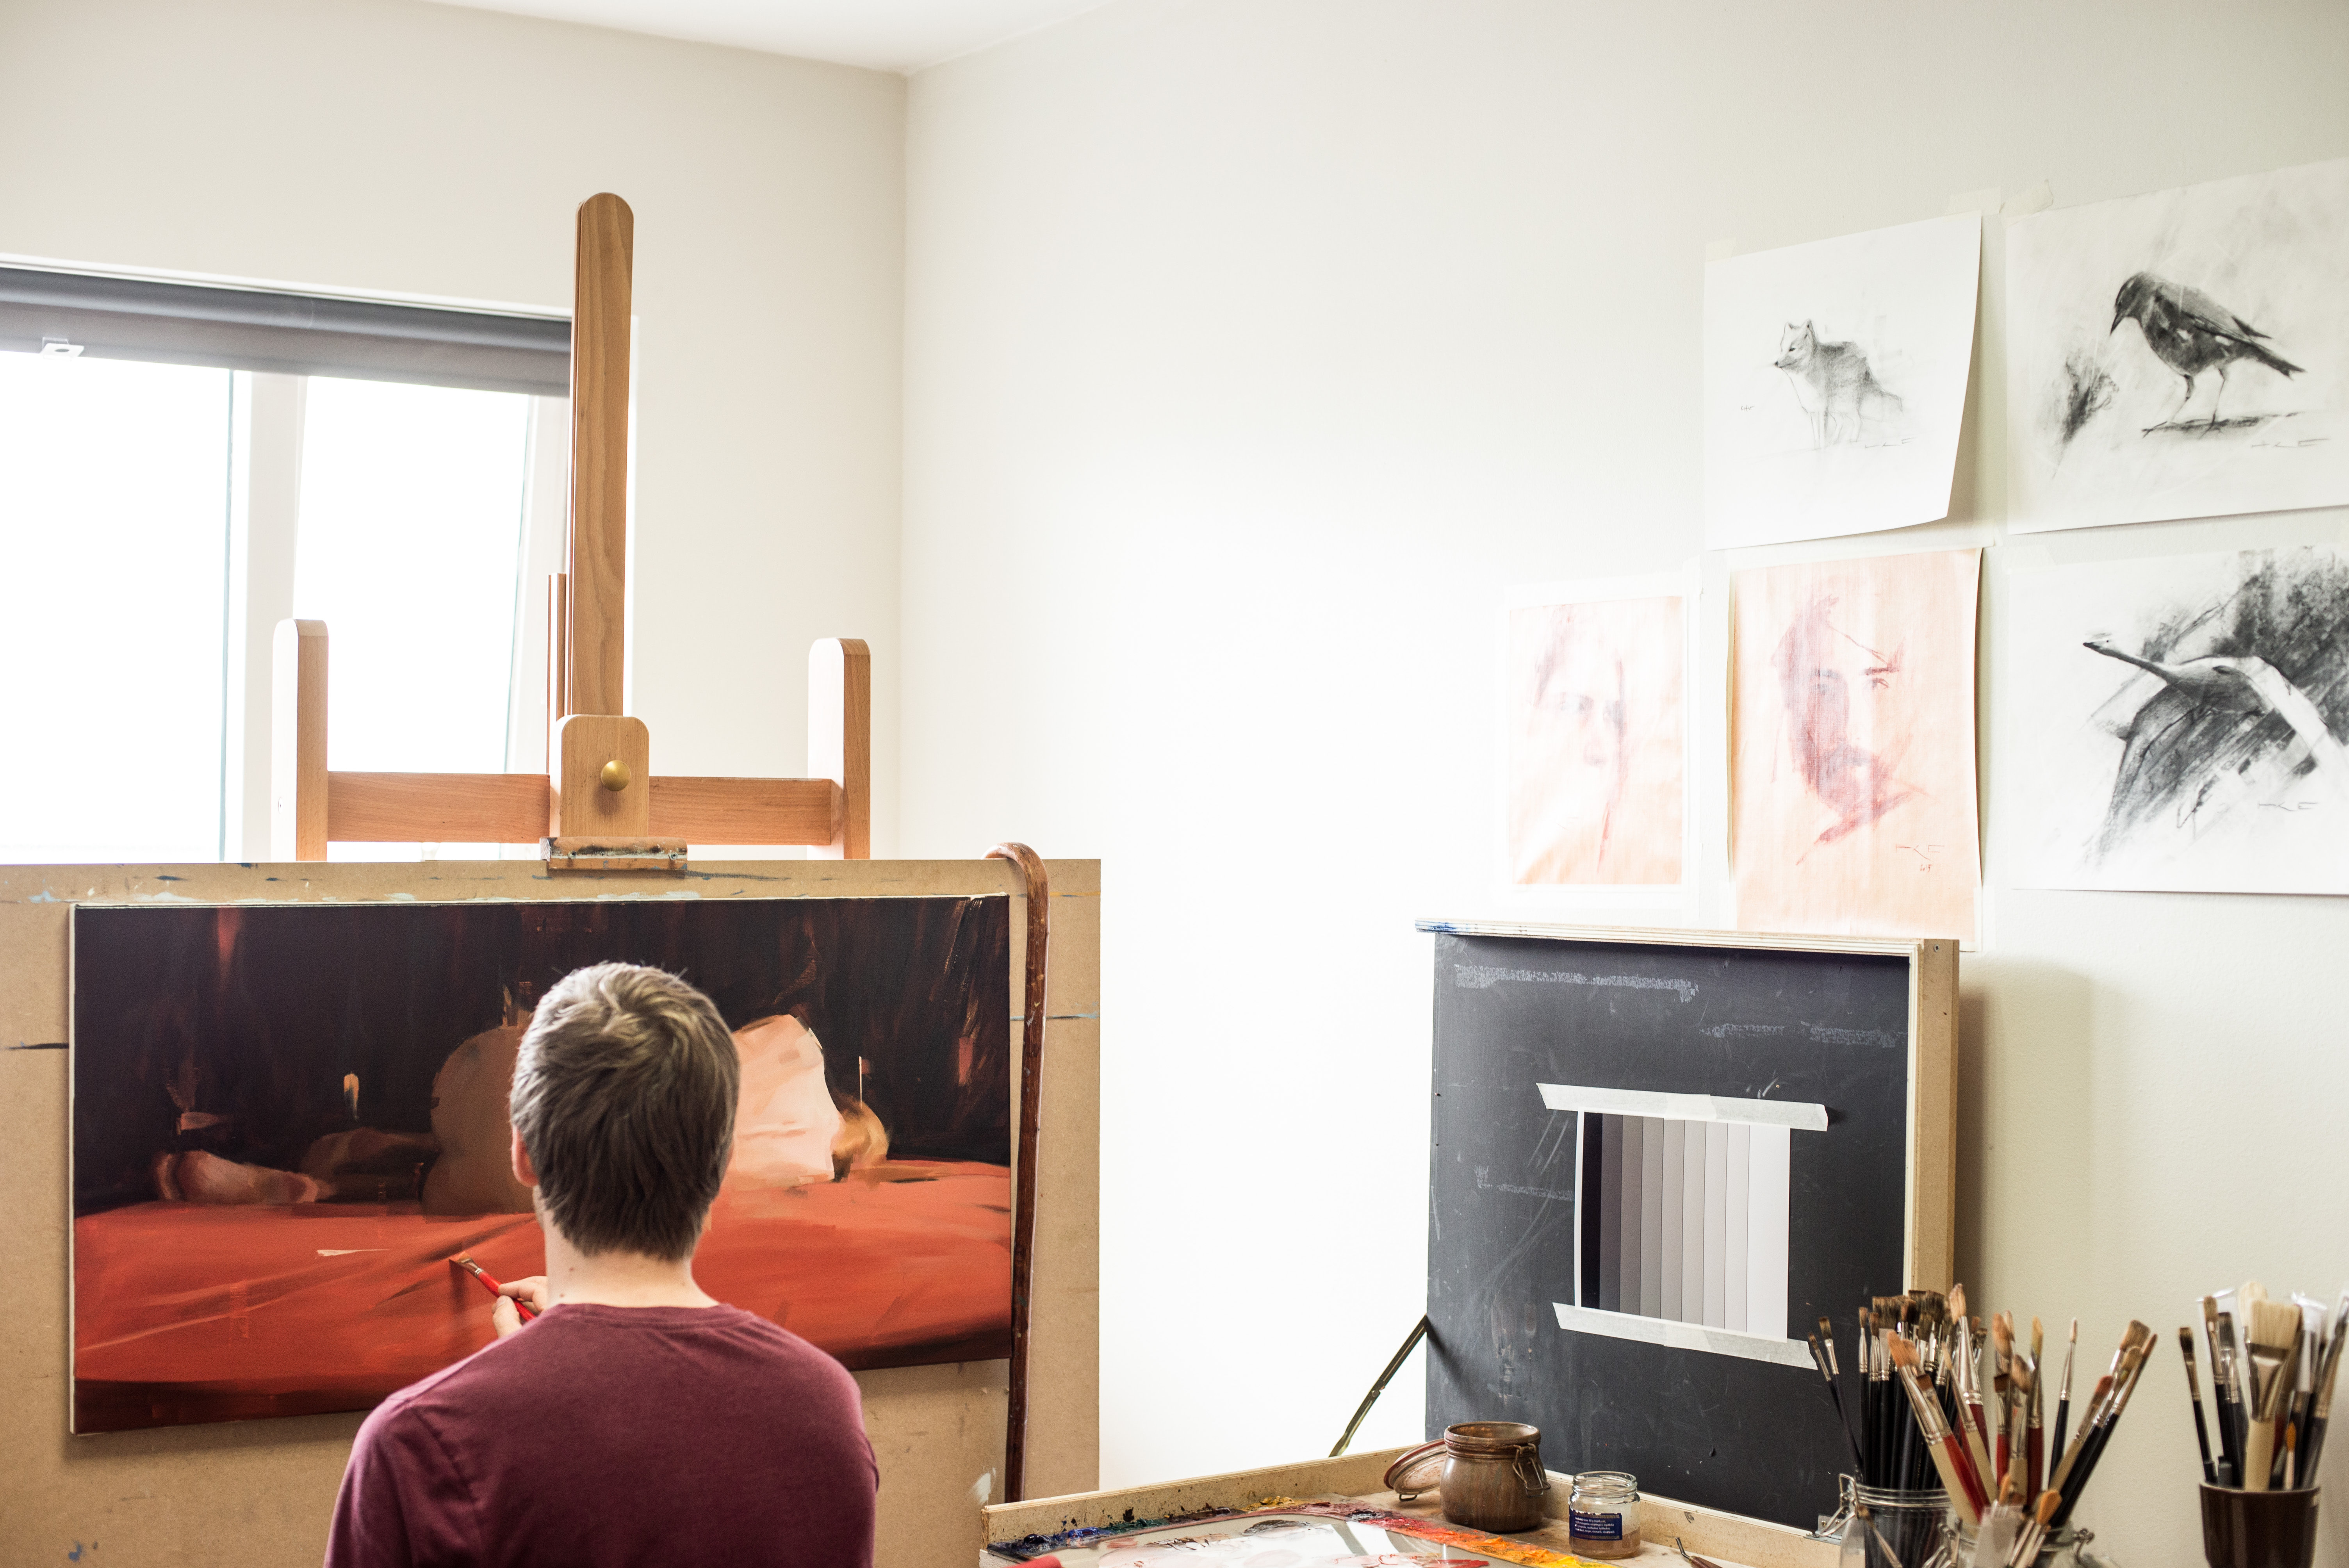 The Accidental Painter - The Reykjavik Grapevine